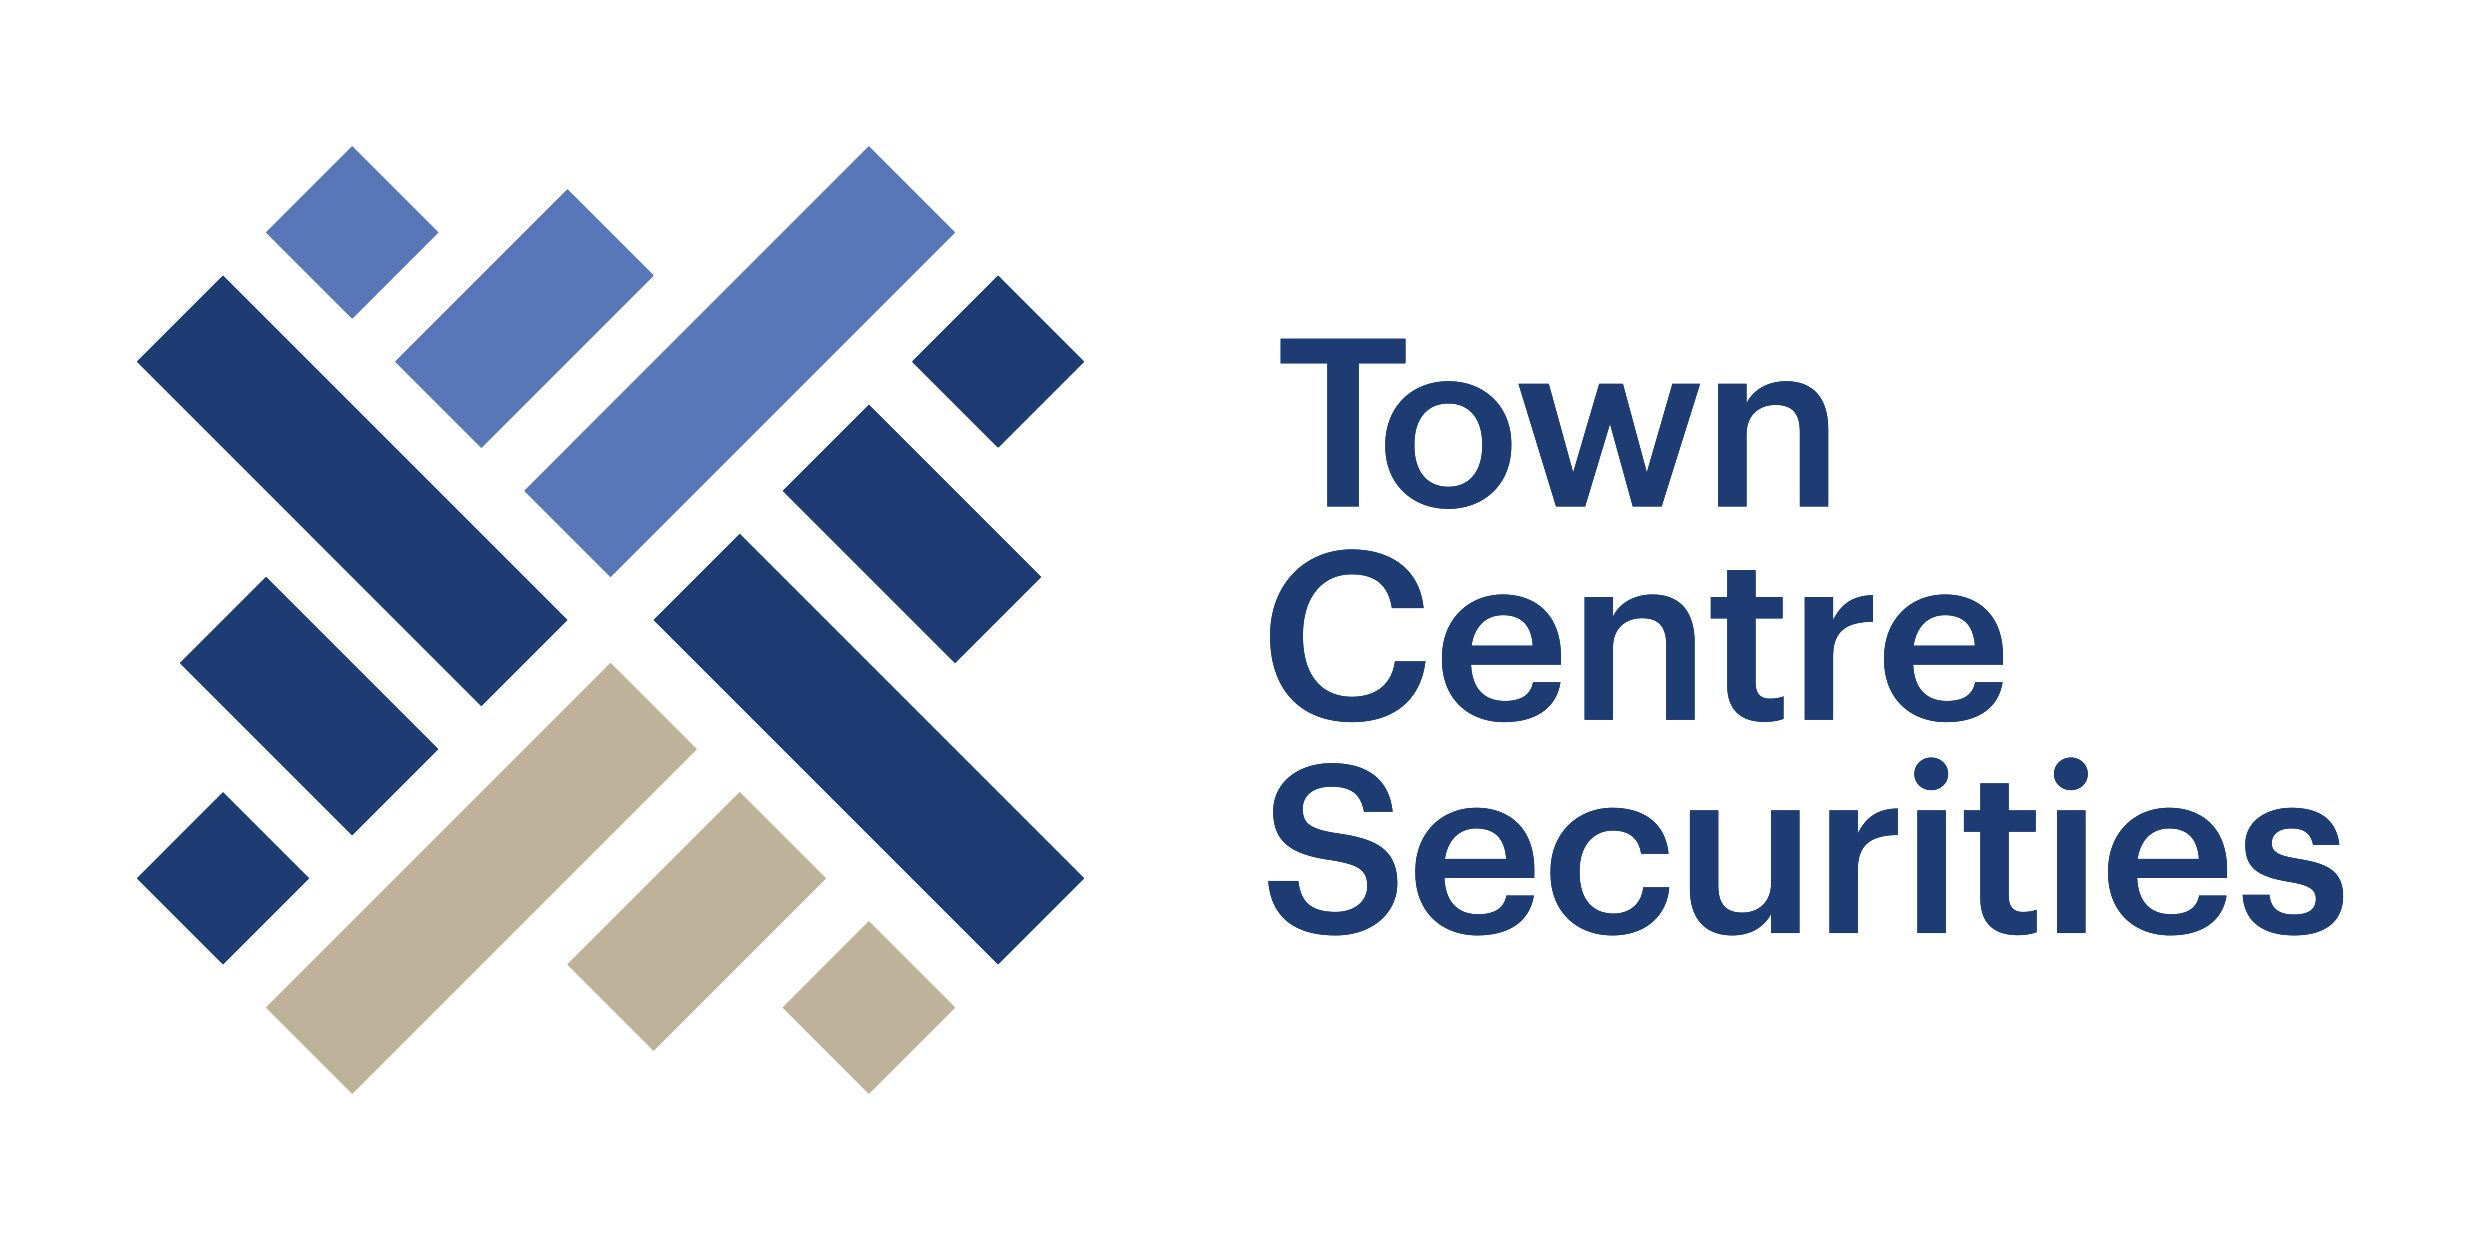 Town Centre Securities plc